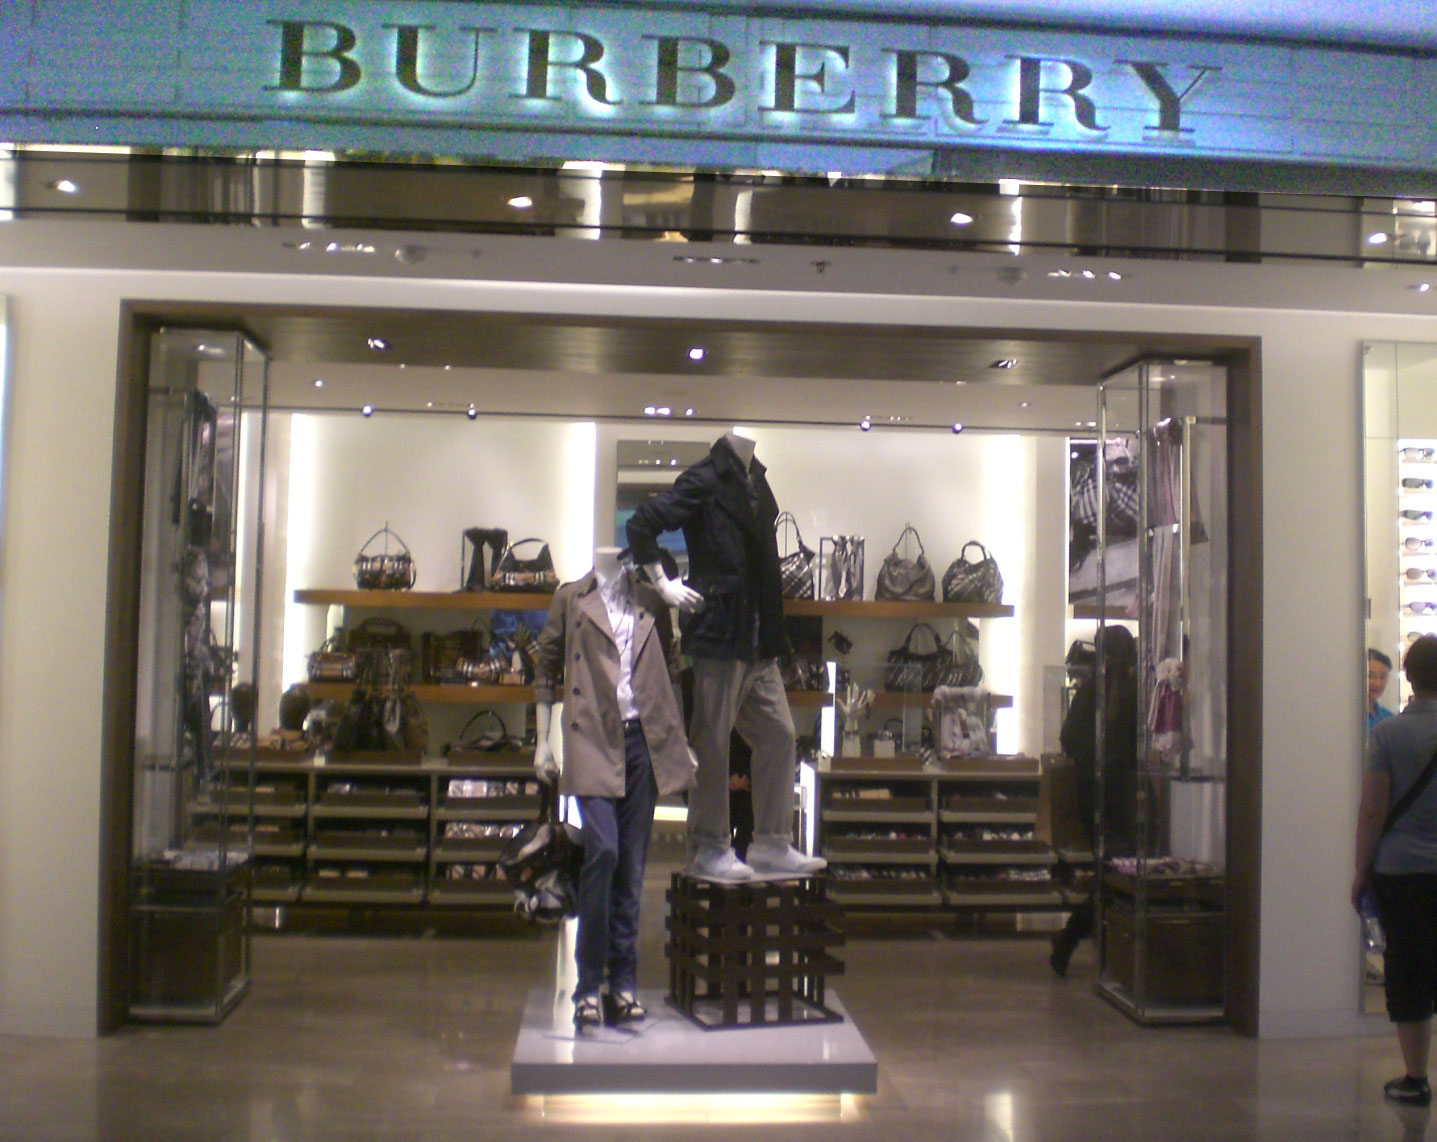 burrbery outlet kz1v  burrbery outlet